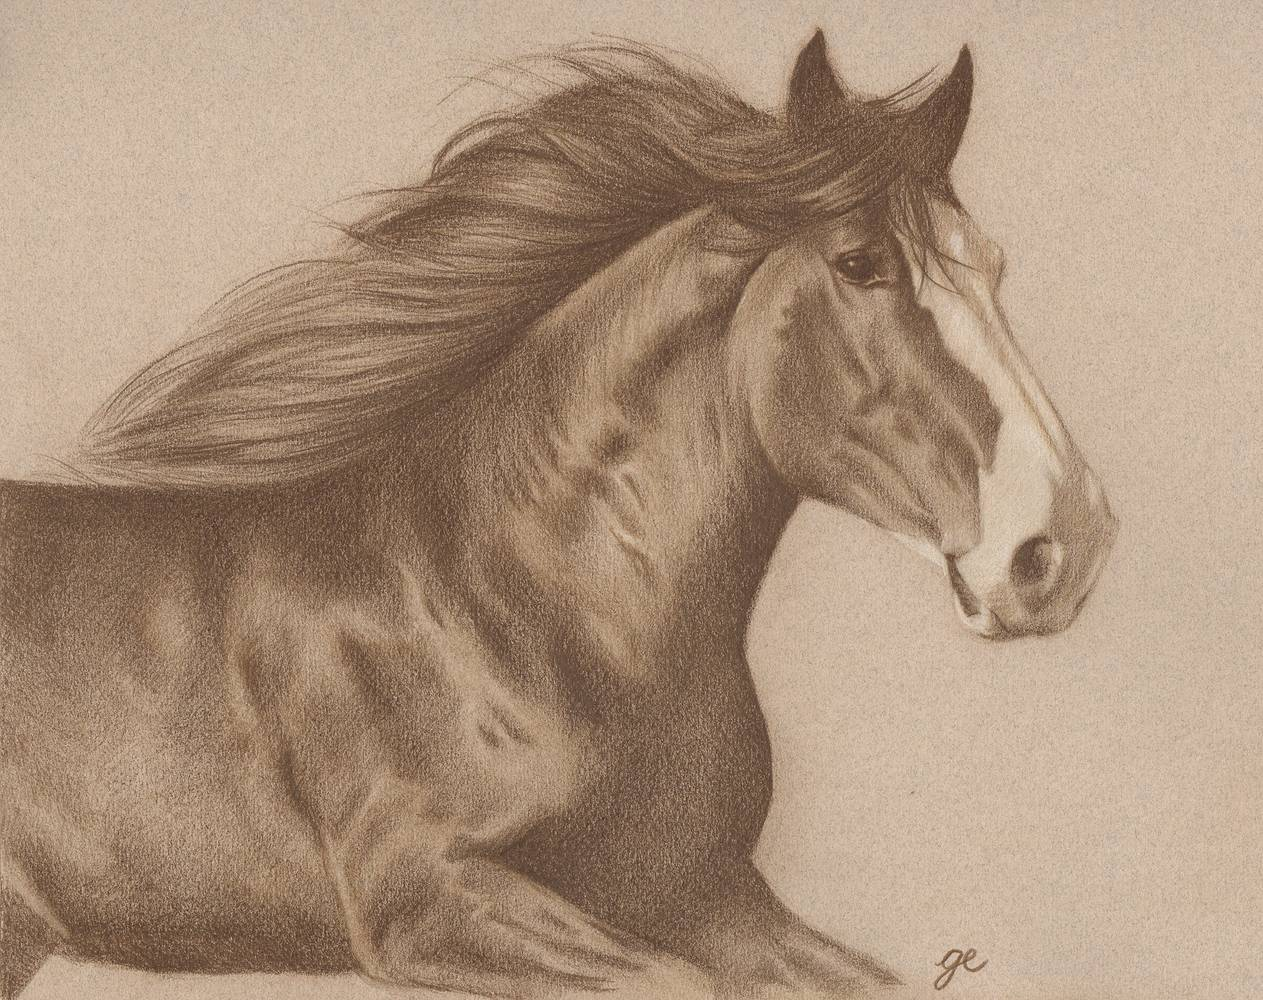 Dessin de cheval monochrome, avril 2014 by Genevieve Desy